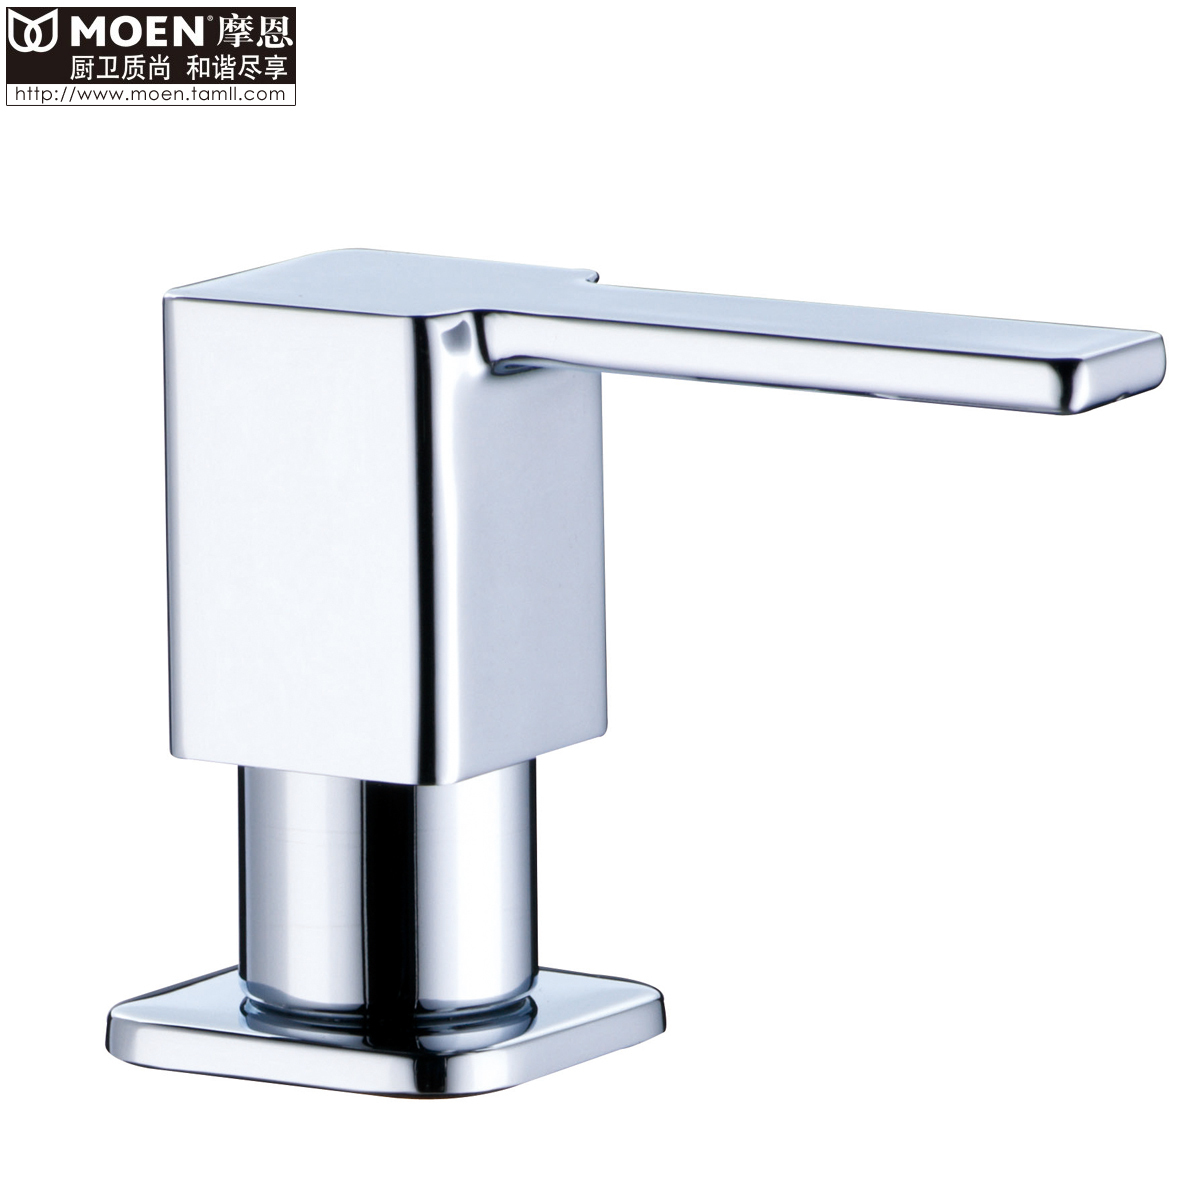 High quality mr mohn moen kitchen sinks stainless steel for High quality kitchen sinks